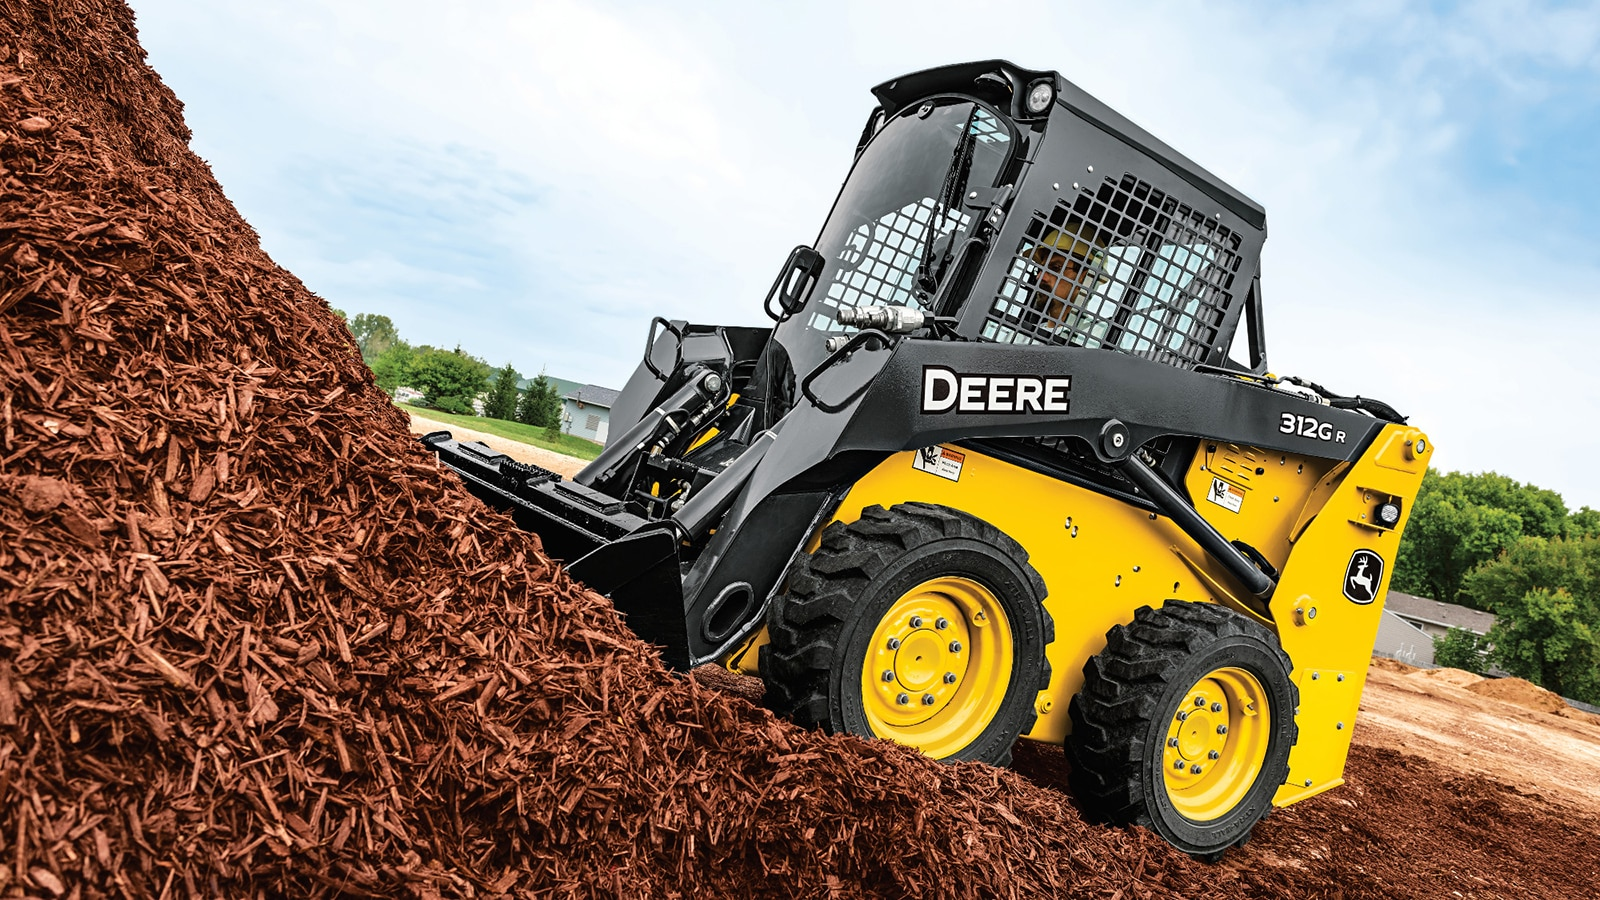 312GR Skid Steer scoops up a bucket of red mulch from a large pile